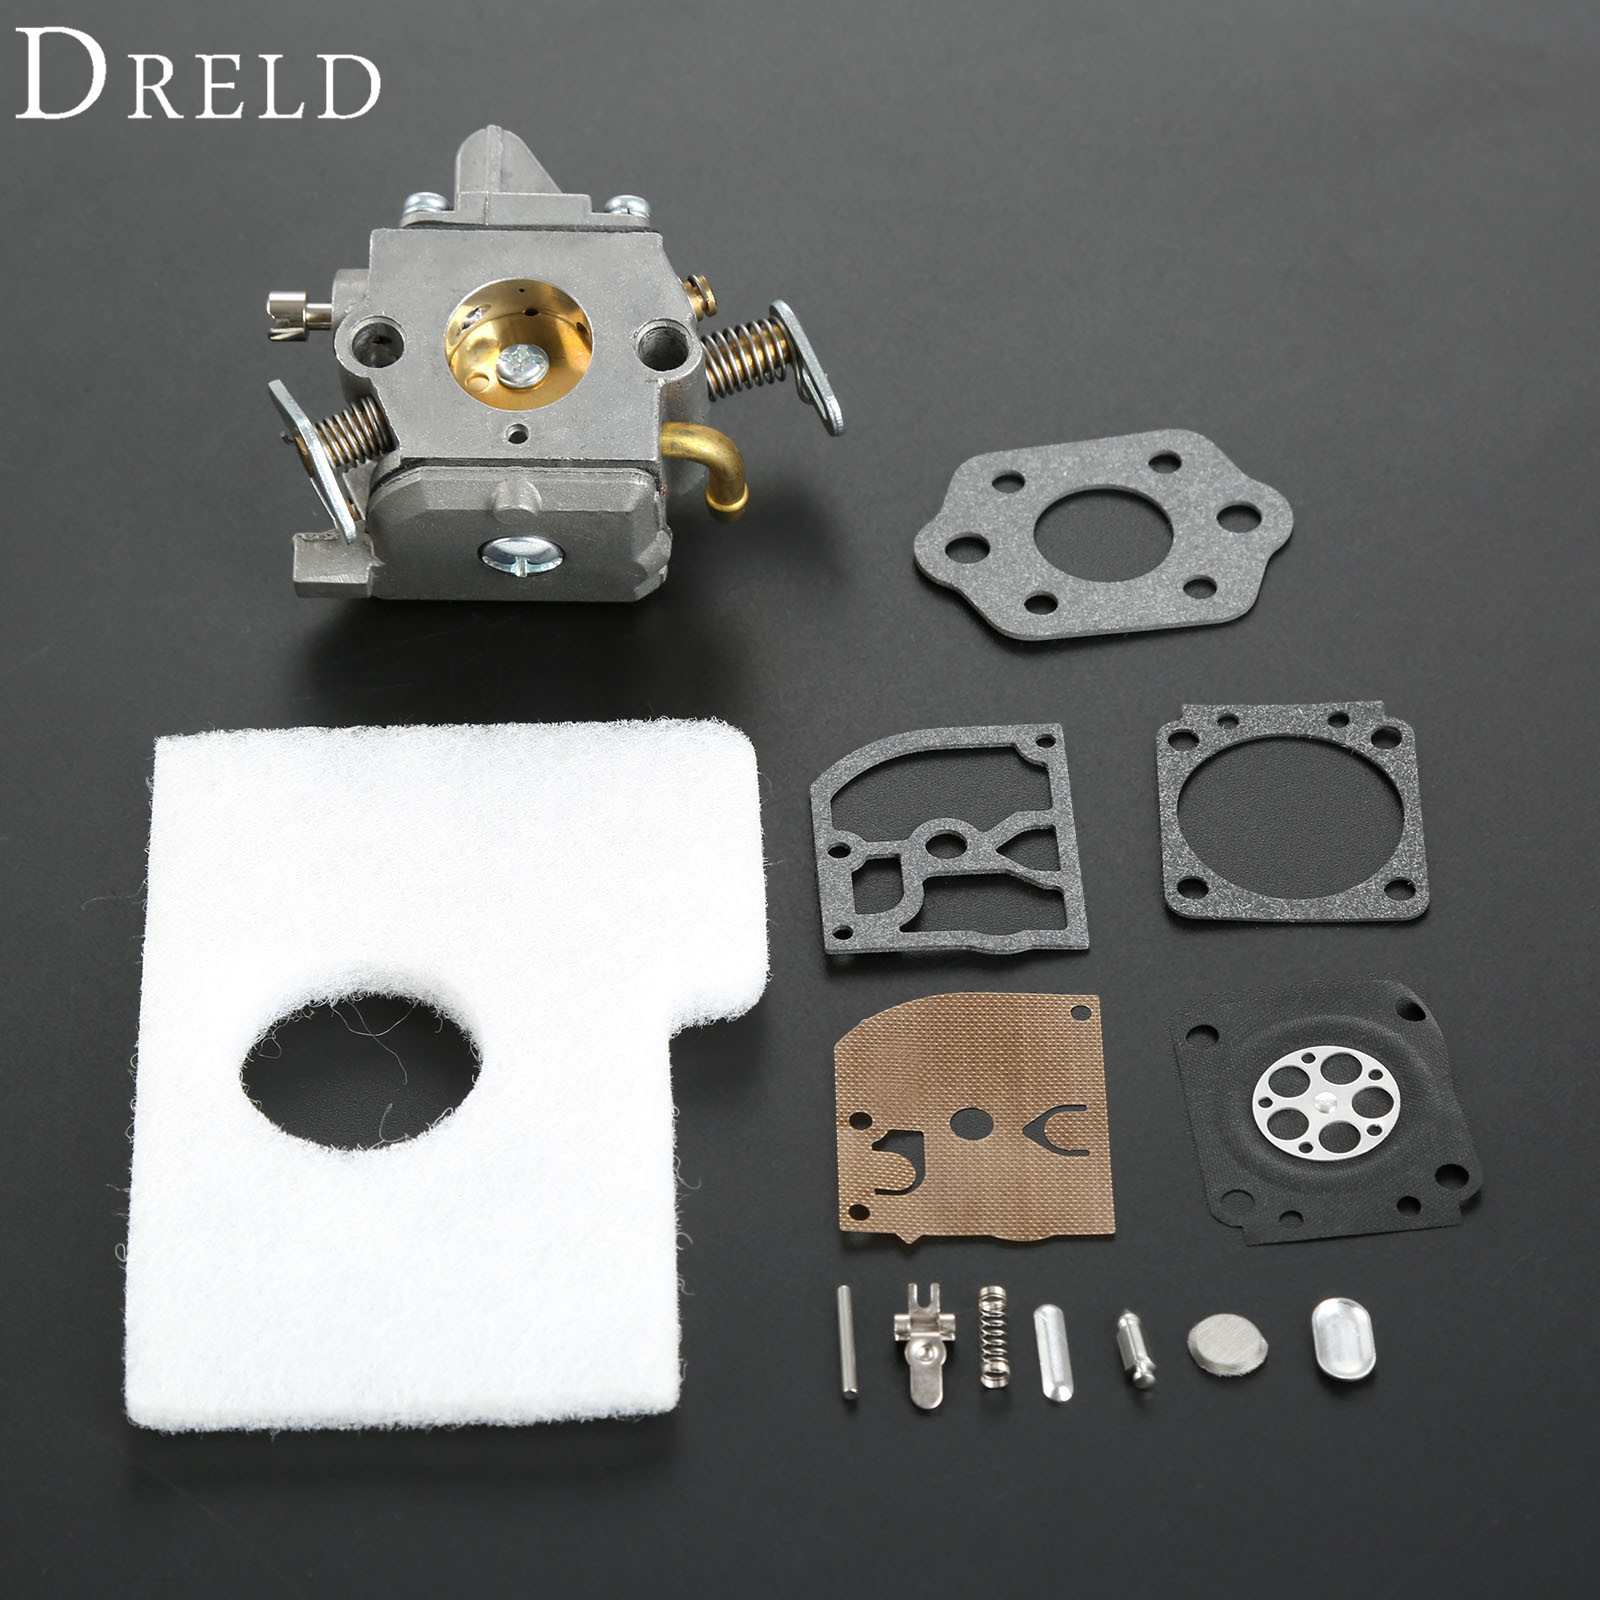 DRELD Chainsaws Carburetor Air Filter Repair Rebuild Kit For STIHL MS170 MS180 MS 170 180 017 018 Chainsaw Zama C1Q-S57B 1130 бензопила stihl ms 180 c be 16 picco